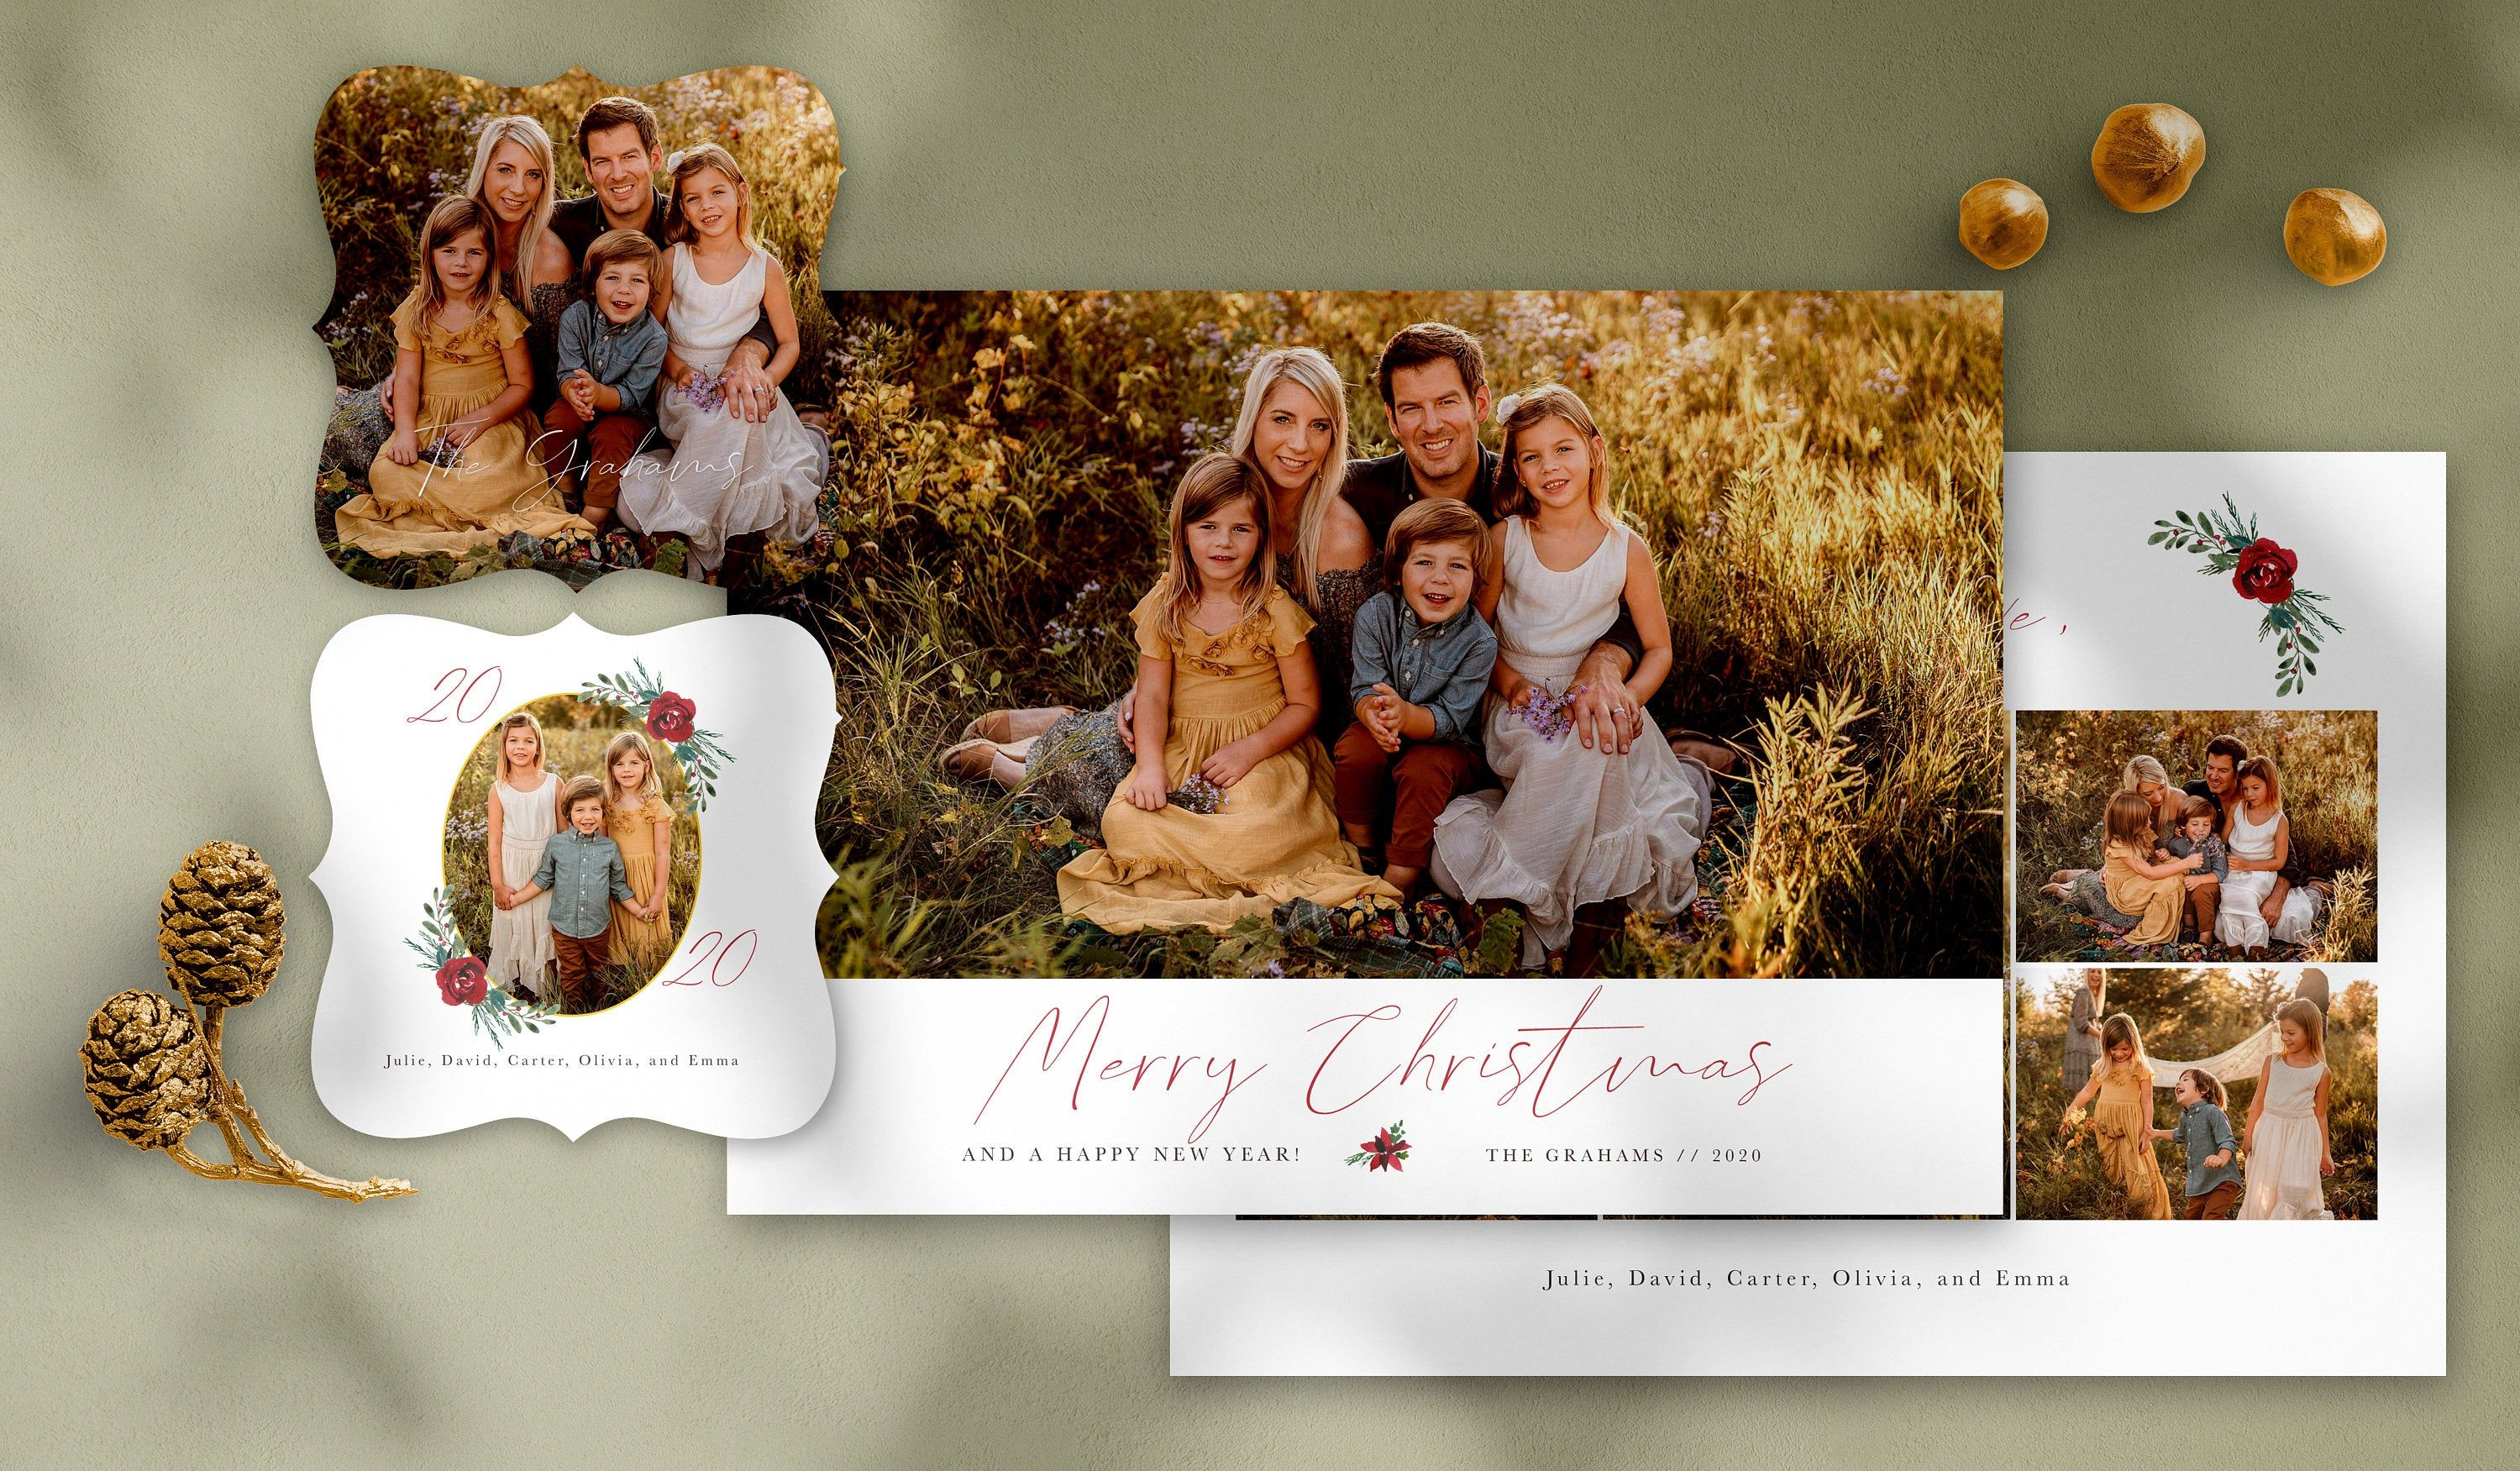 Merry Christmas Photo Card Template Free Matching 3x3 Etsy Christmas Photo Card Template Merry Christmas Card Photo Christmas Photo Cards